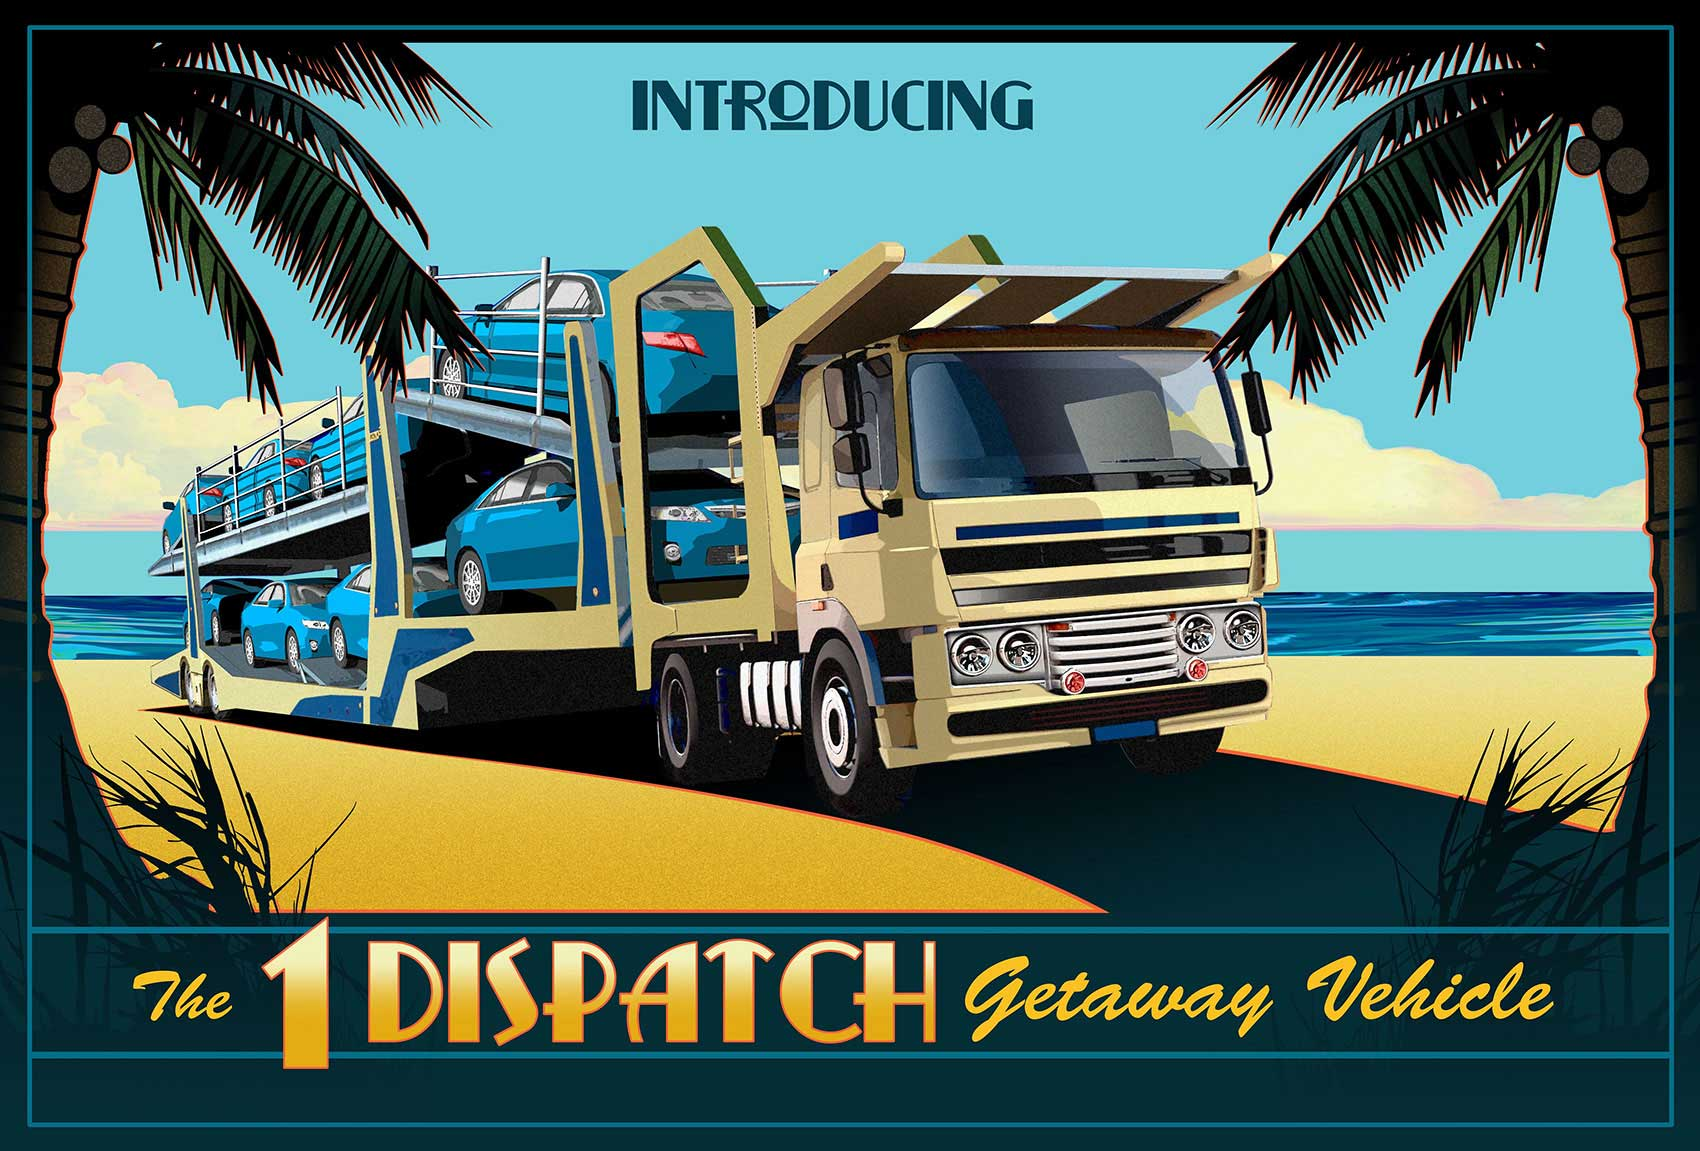 illustration-Retro_Dispatch-getaway-vehicle-Tony-Randazzo